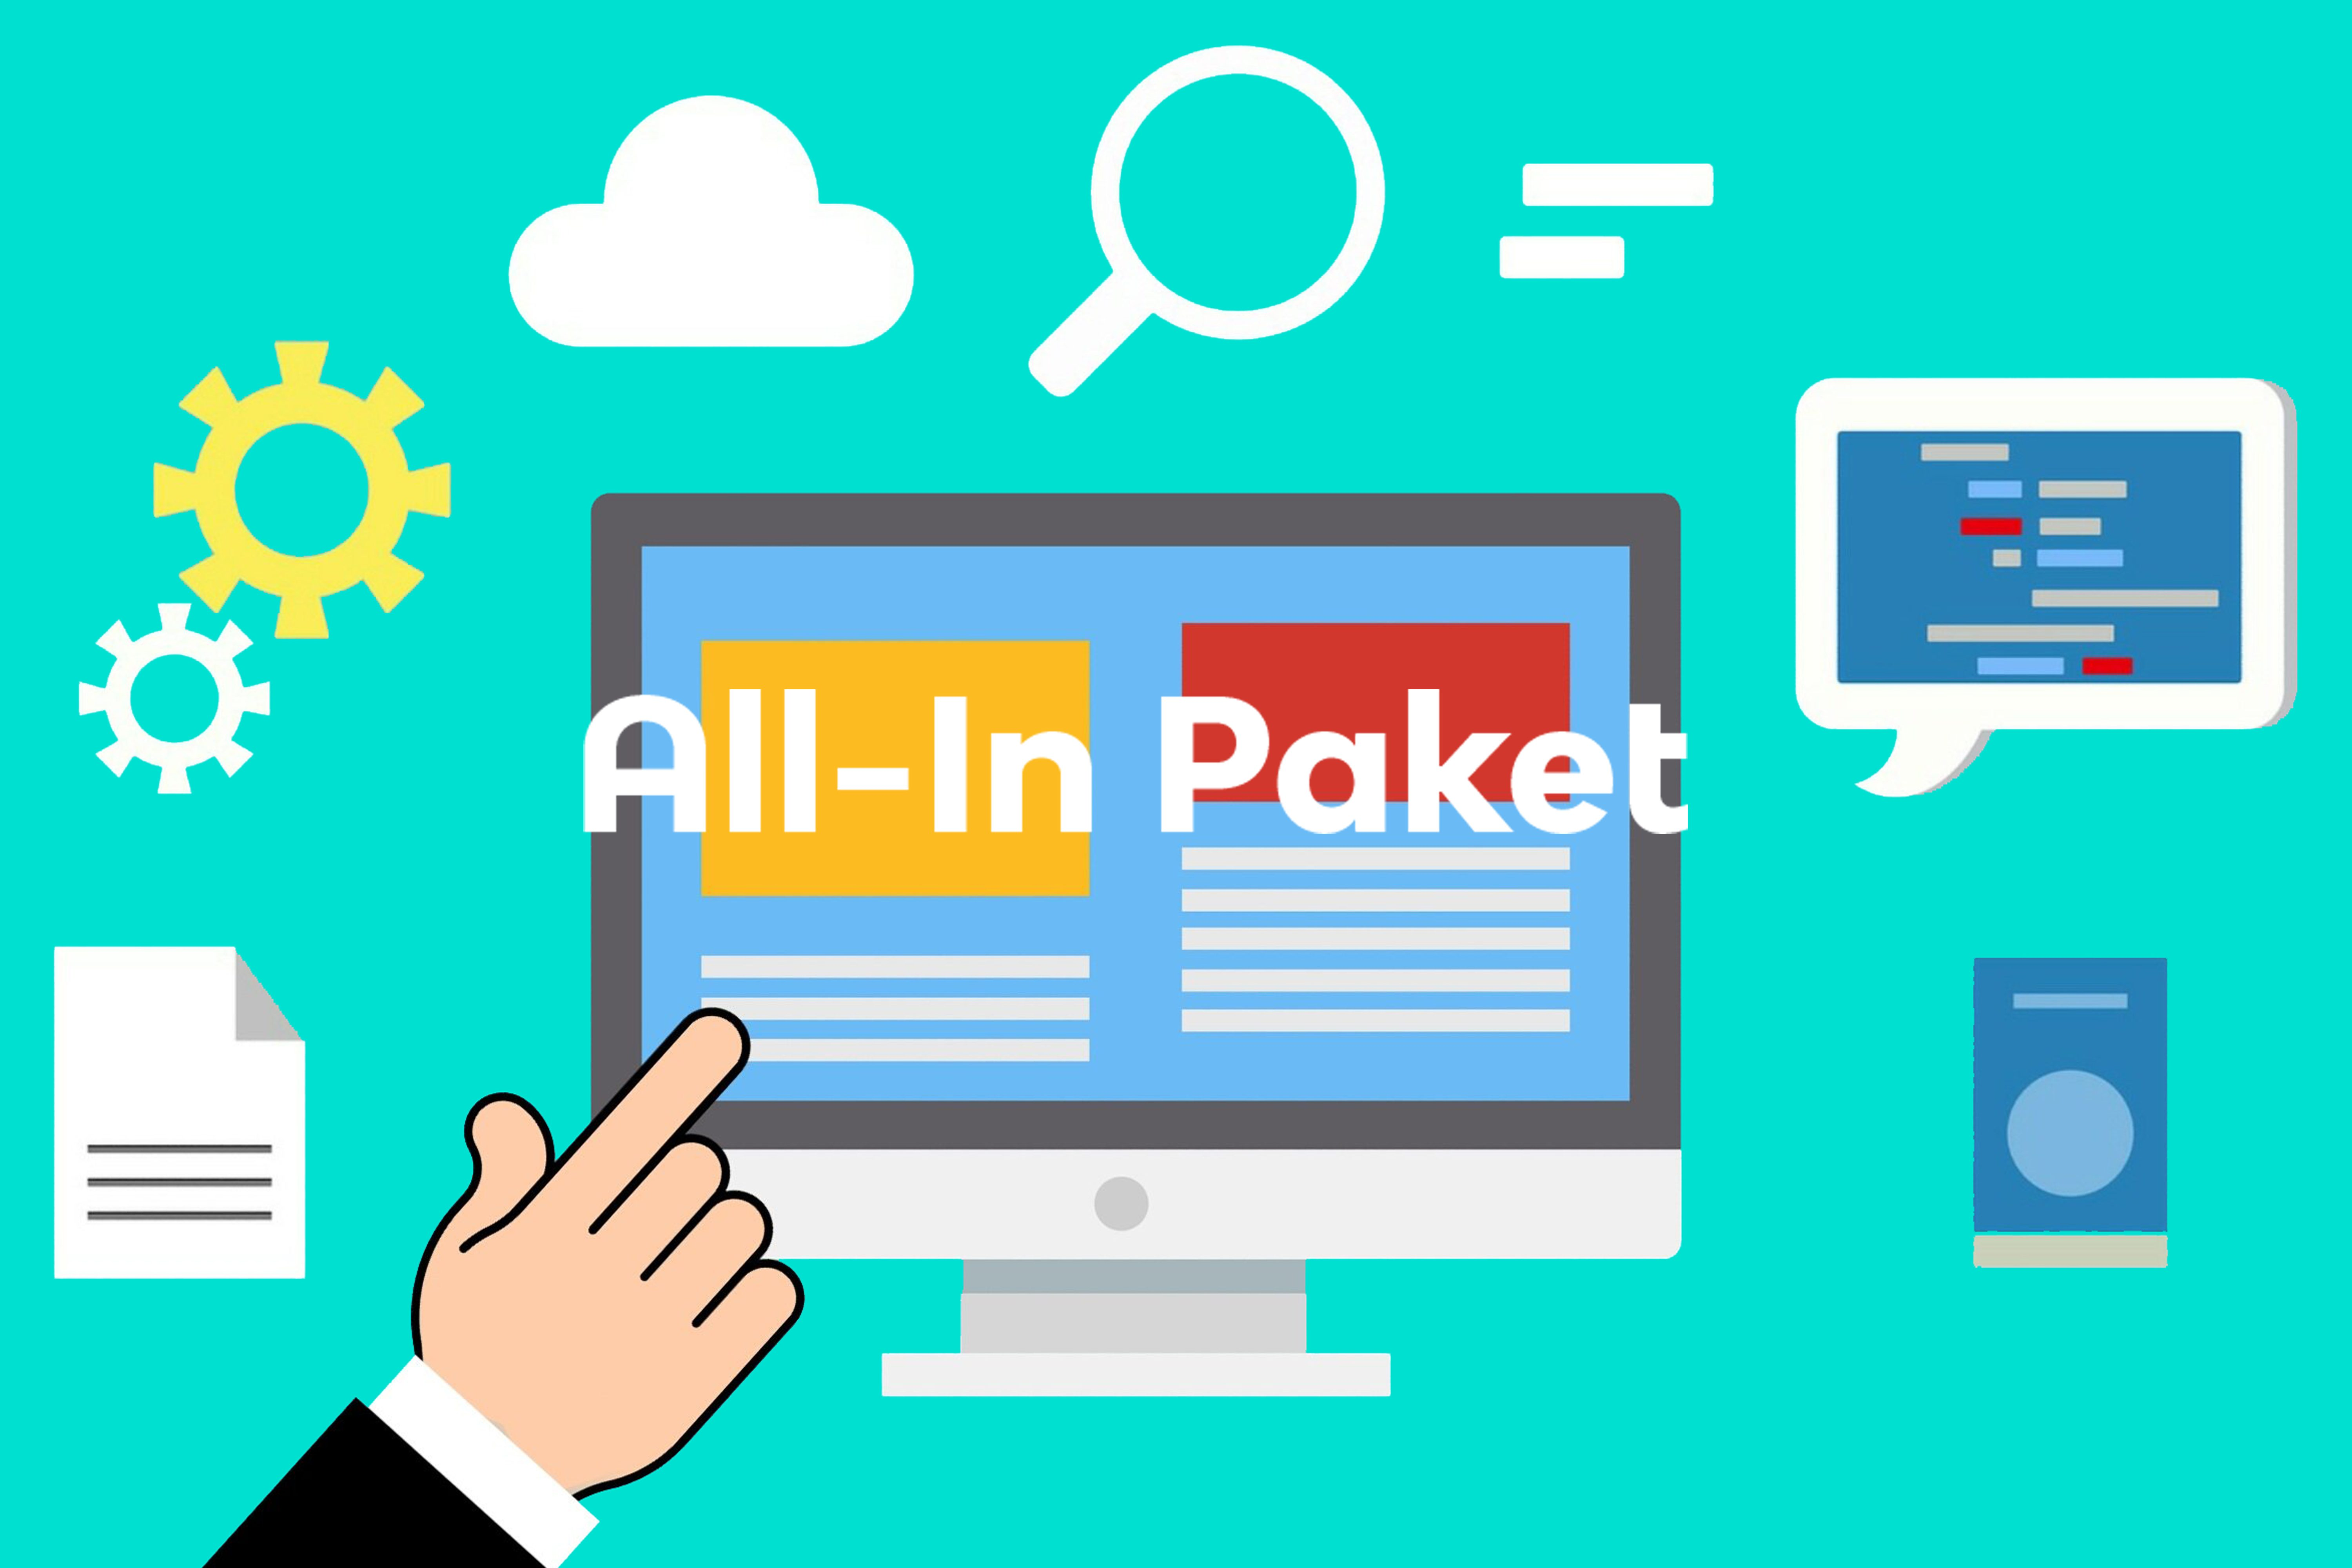 All-in Paket